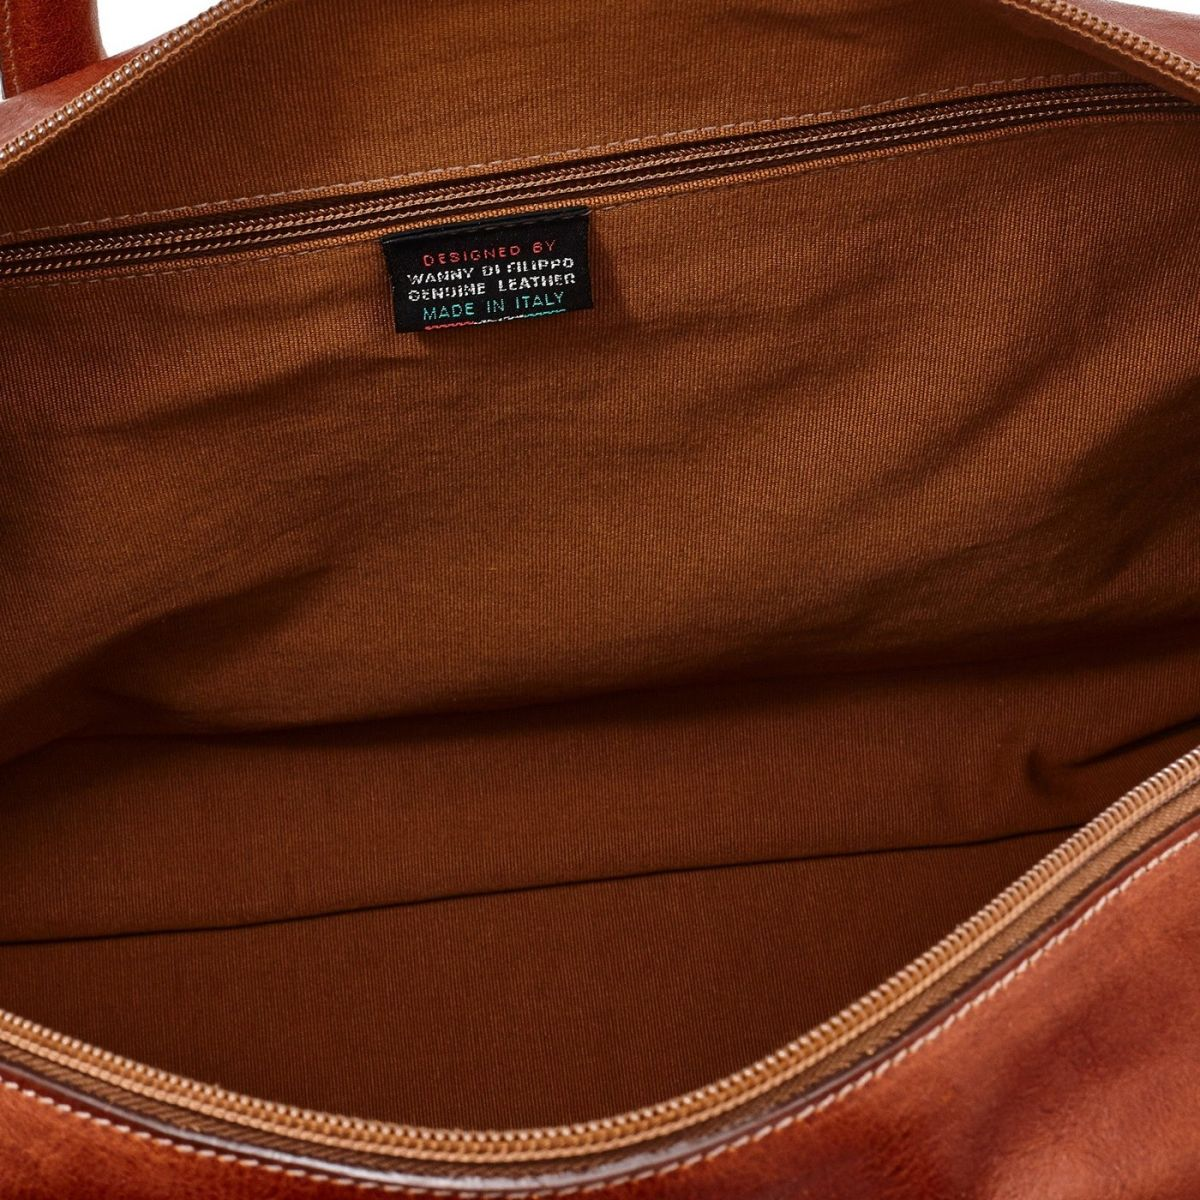 Travel Bag in Vintage Cowhide Leather BDU010 color Dark Brown Seppia | Details